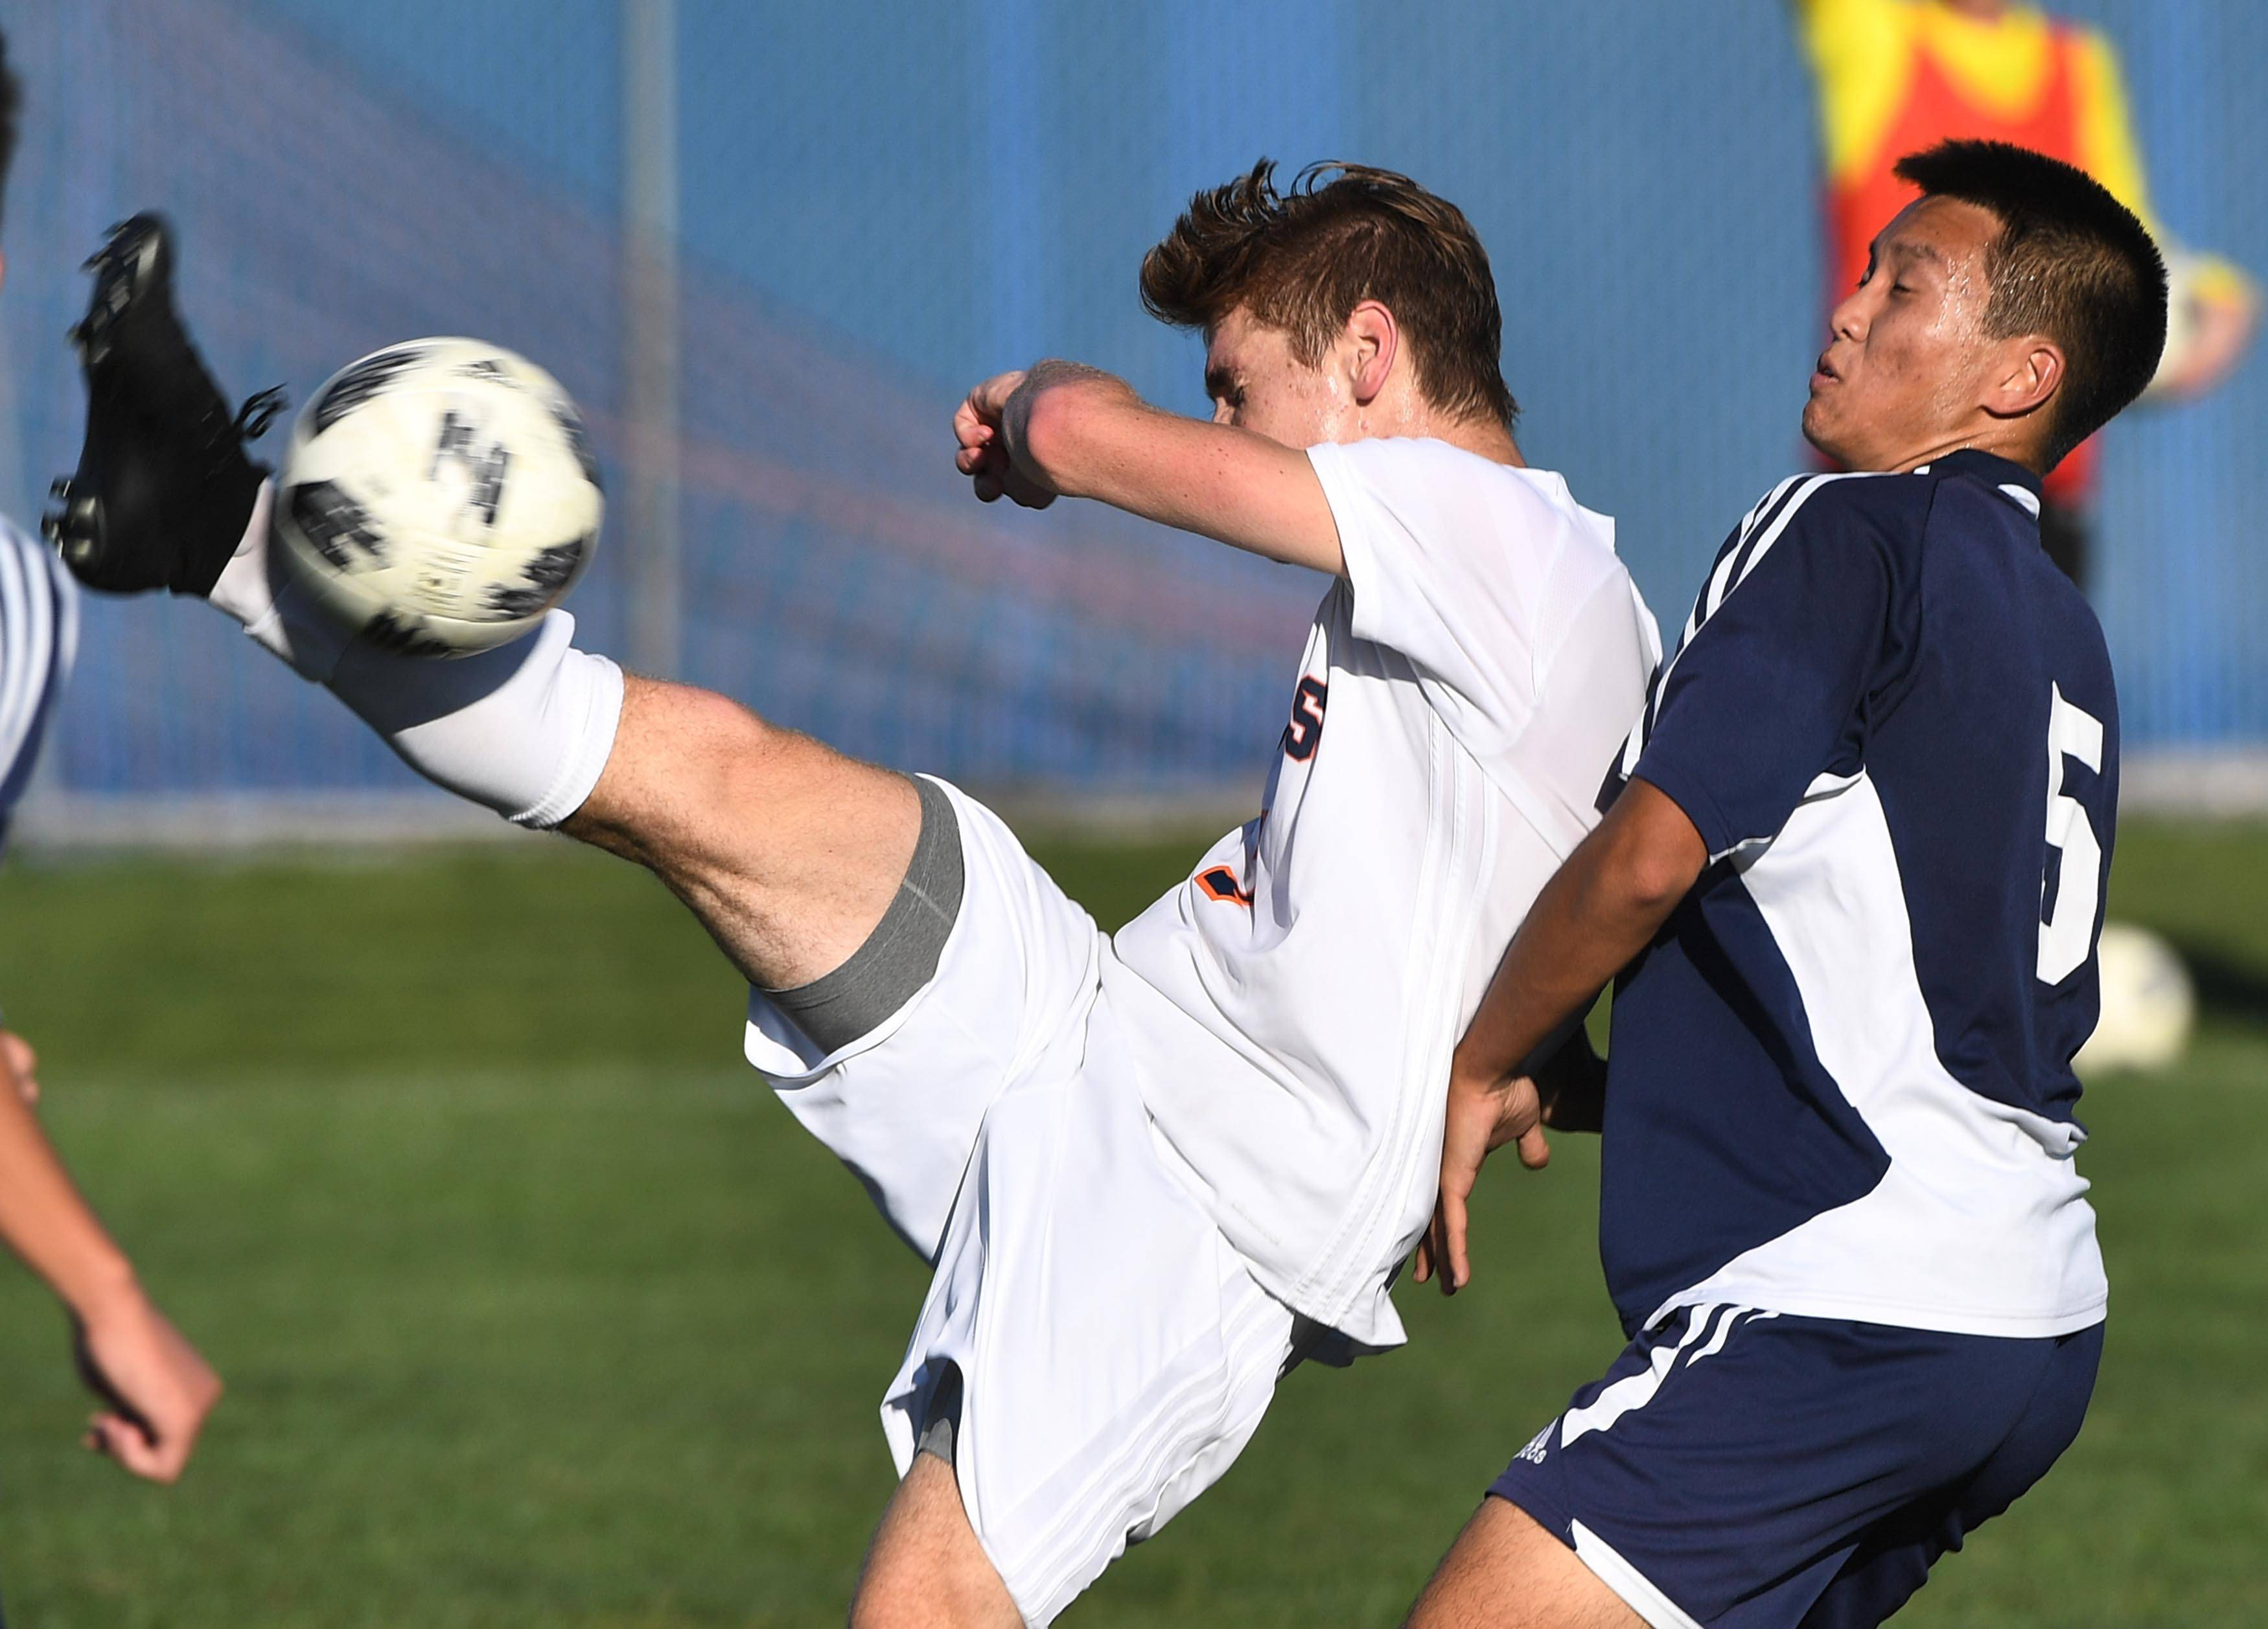 Naperville North's Patrick Koenig bicycle kicks the ball against Neuqua Valley's Kevin Wu in a boys soccer game Tuesday in Naperville.